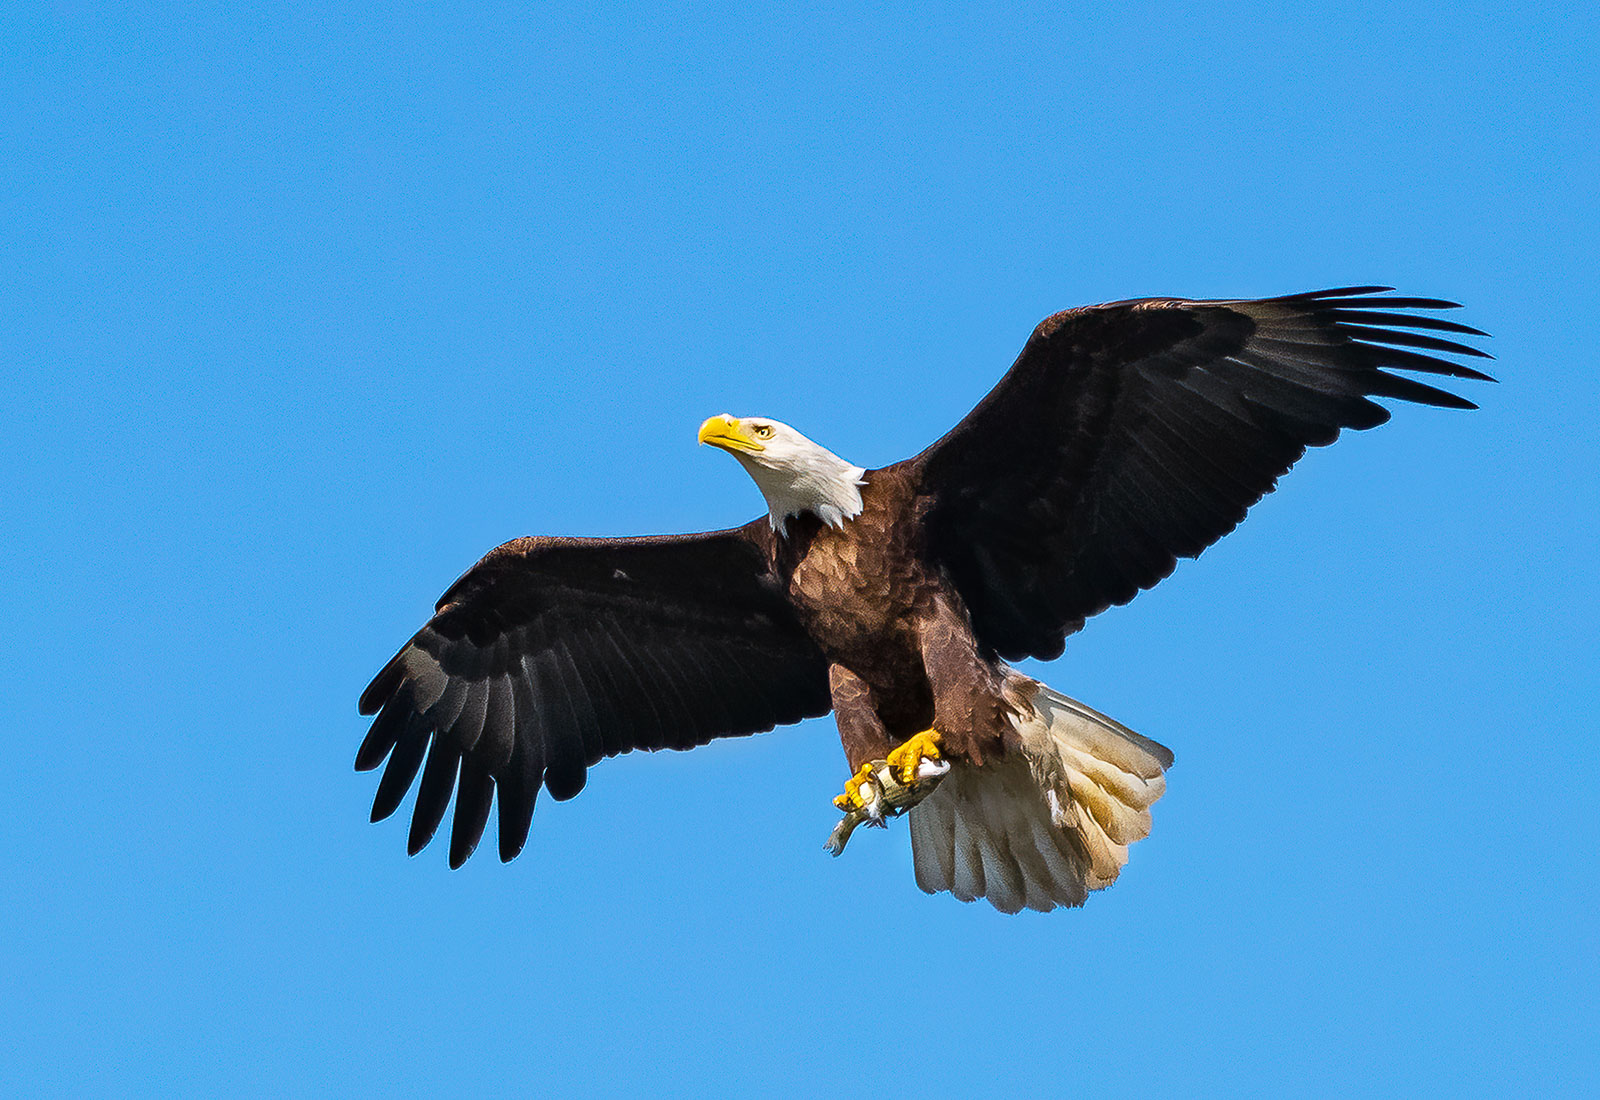 Eagle delivers fish for eaglets in the nest